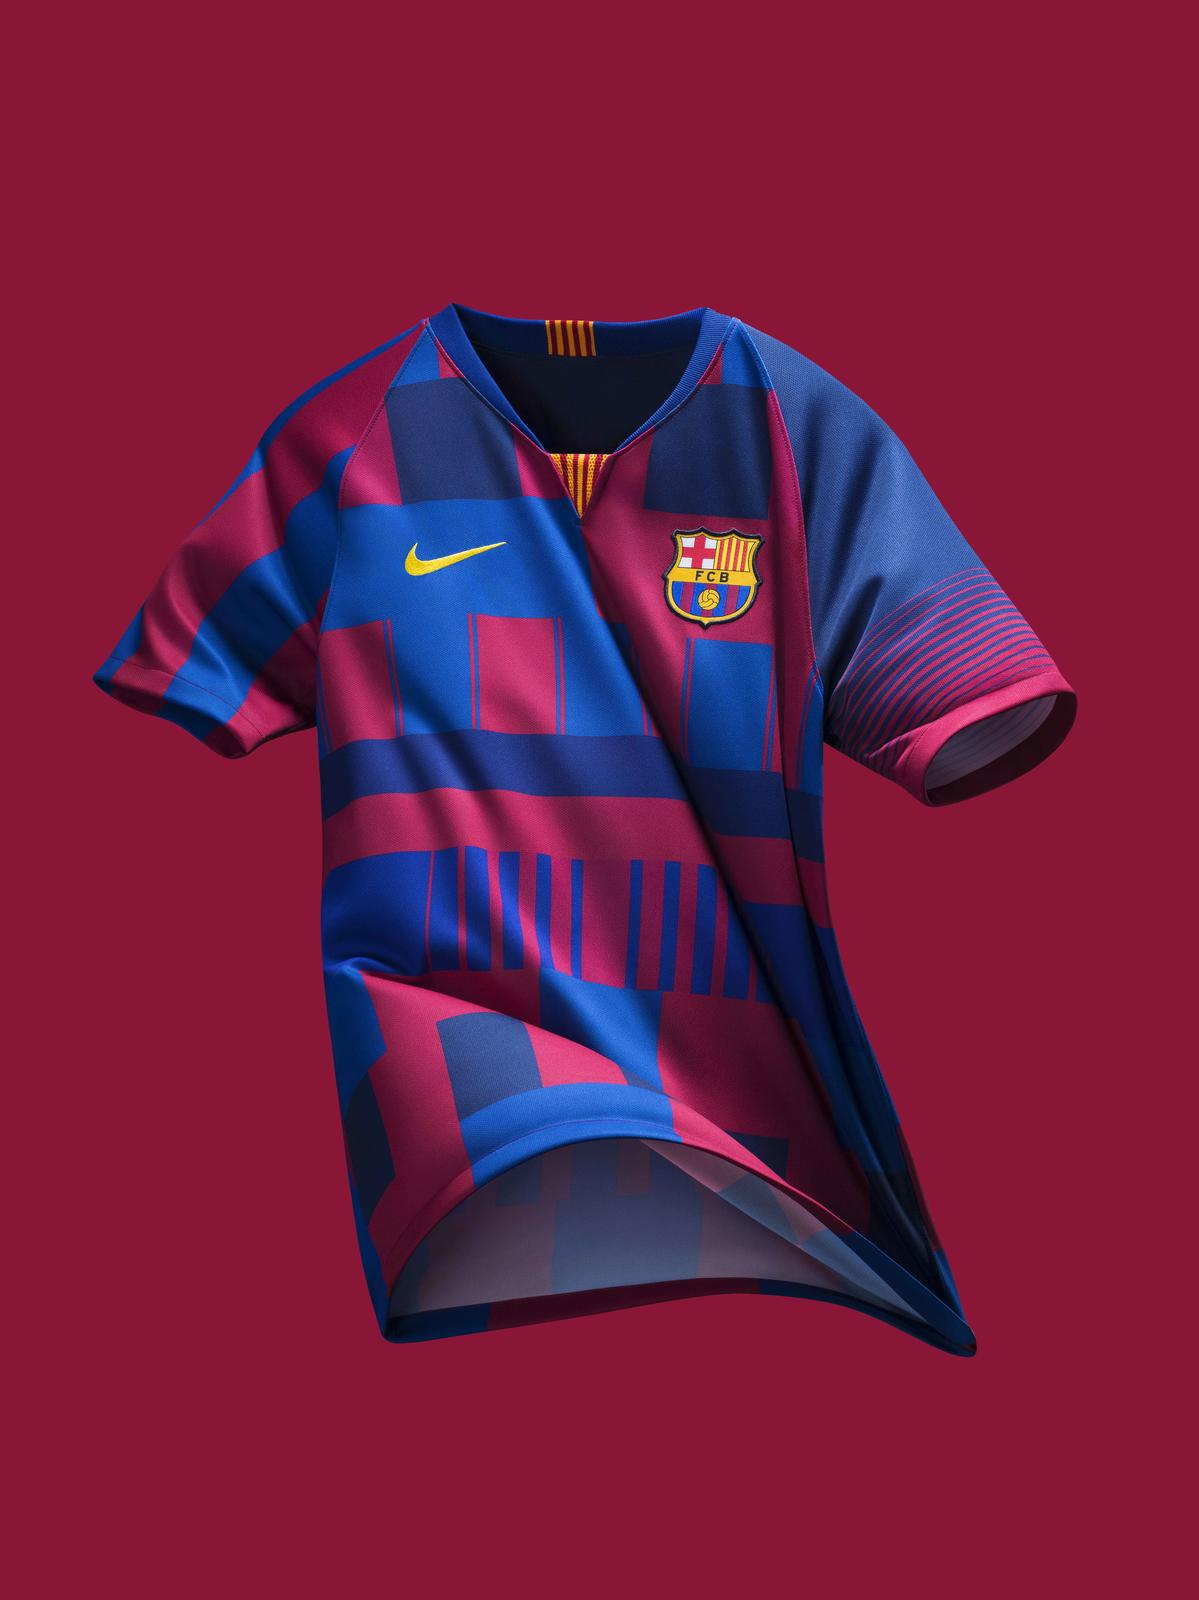 8dc60dc5cef FC Barcelona What The 20th Anniversary Jersey - Nike News